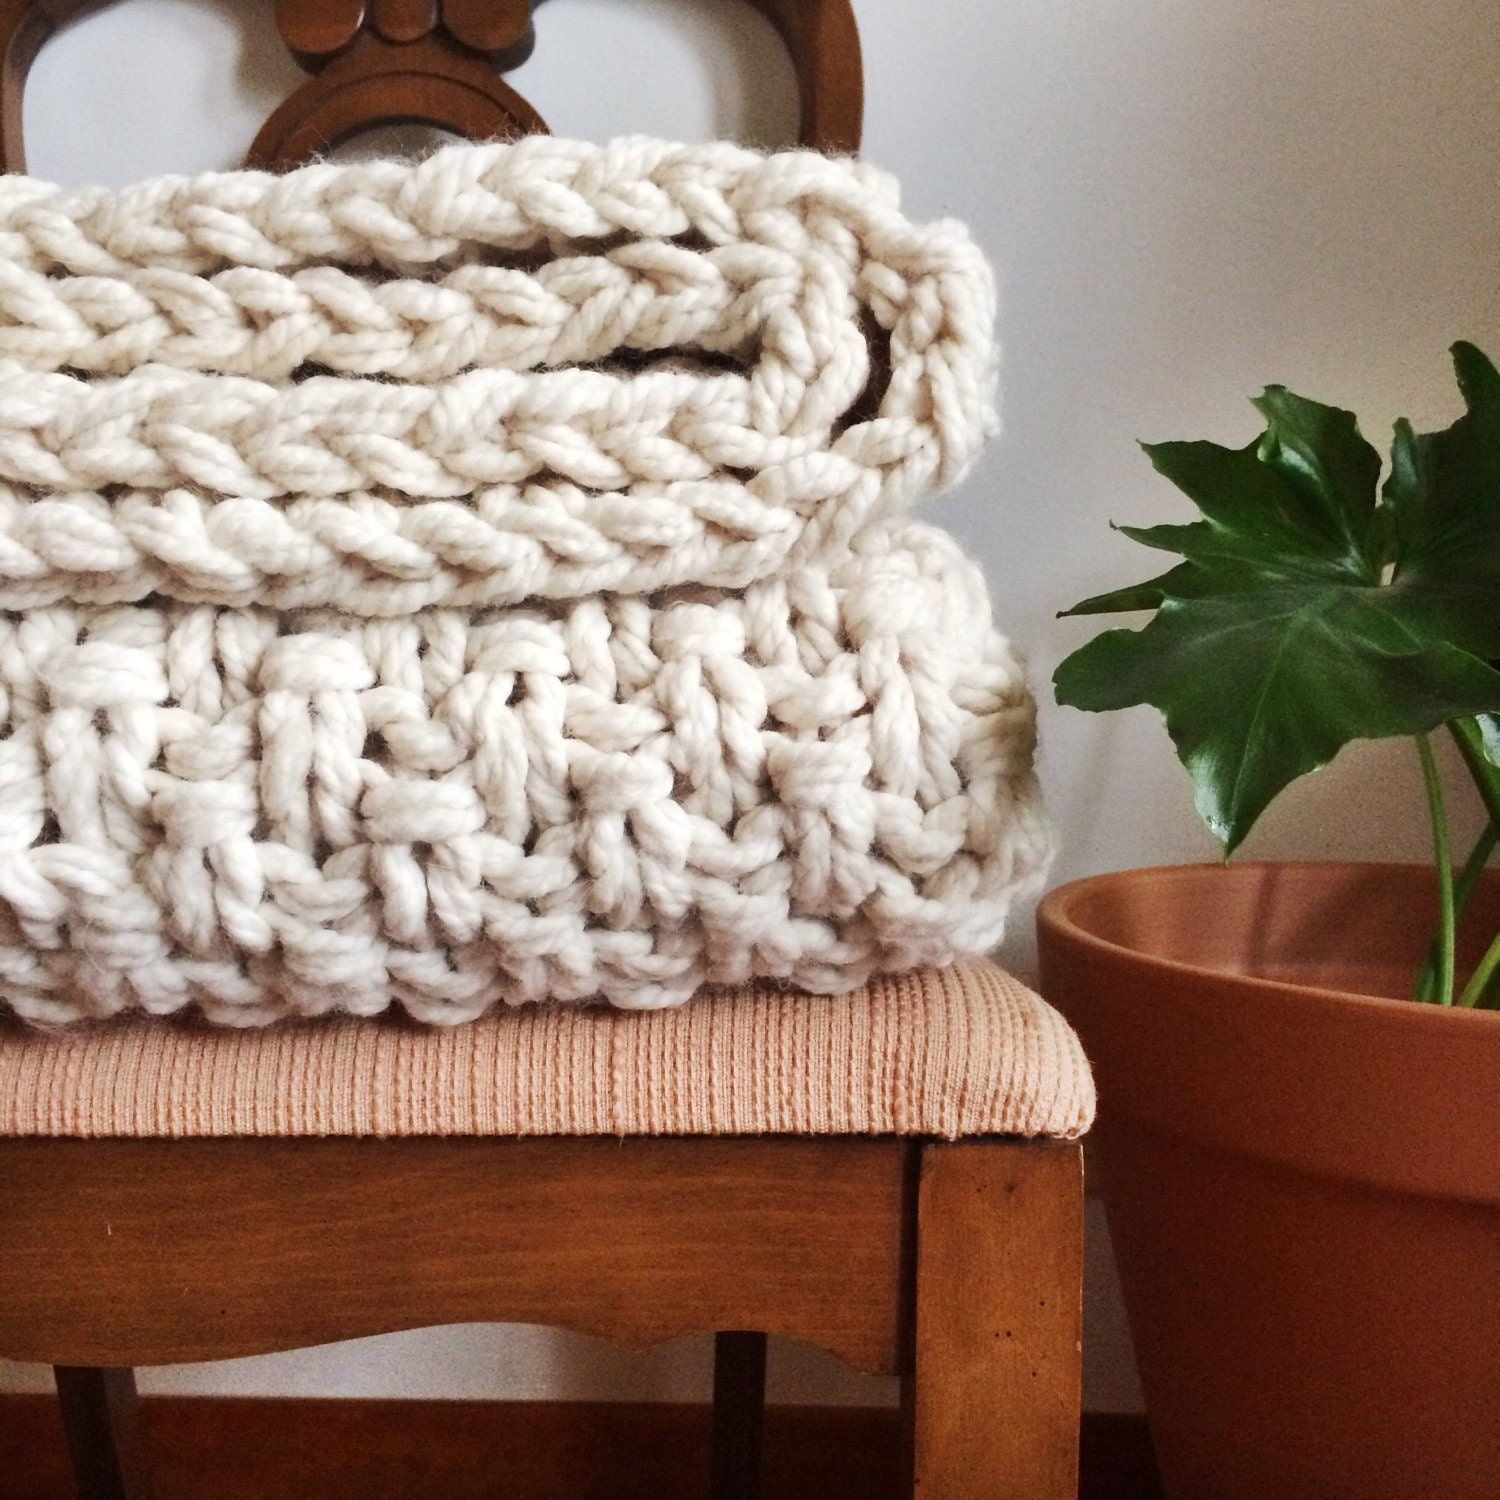 Knitting A Throw Blanket: HSFN Sweater Blanket White Chunky Knit Blanket Wool Knit